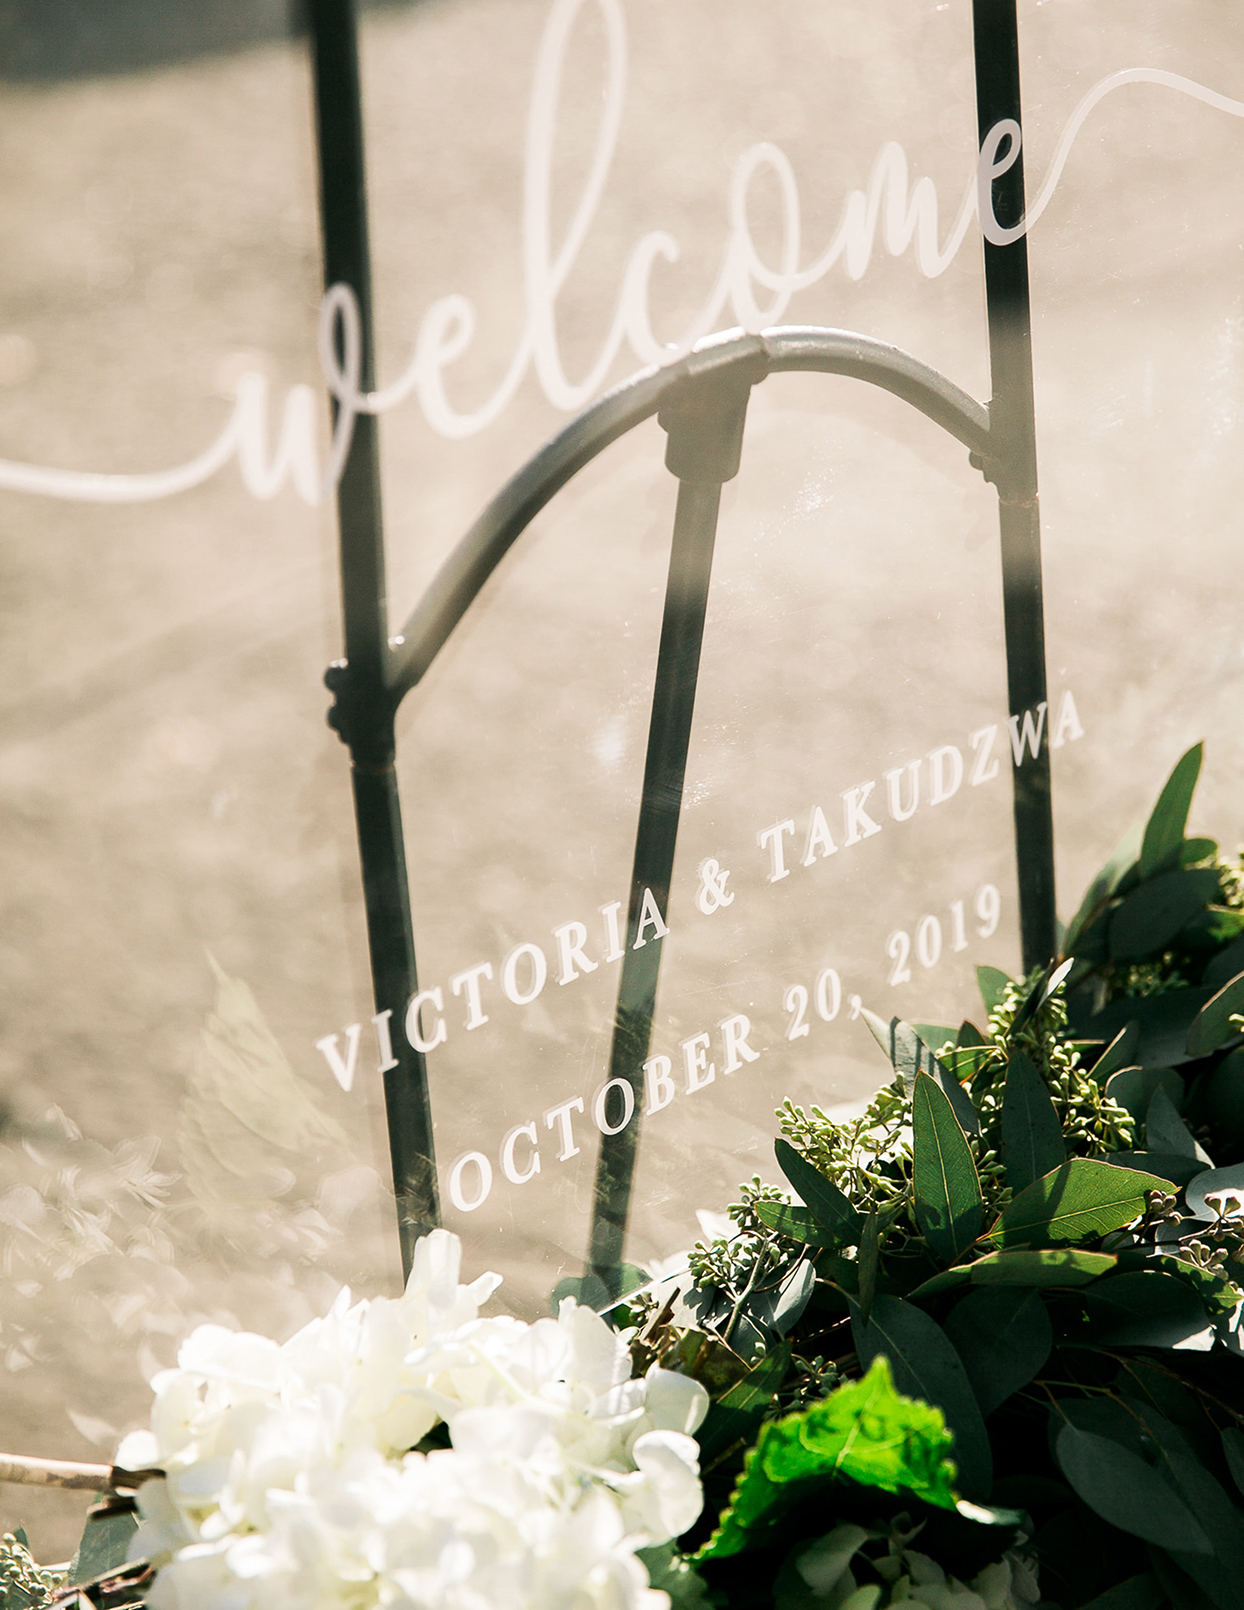 victoria tk wedding glass sign